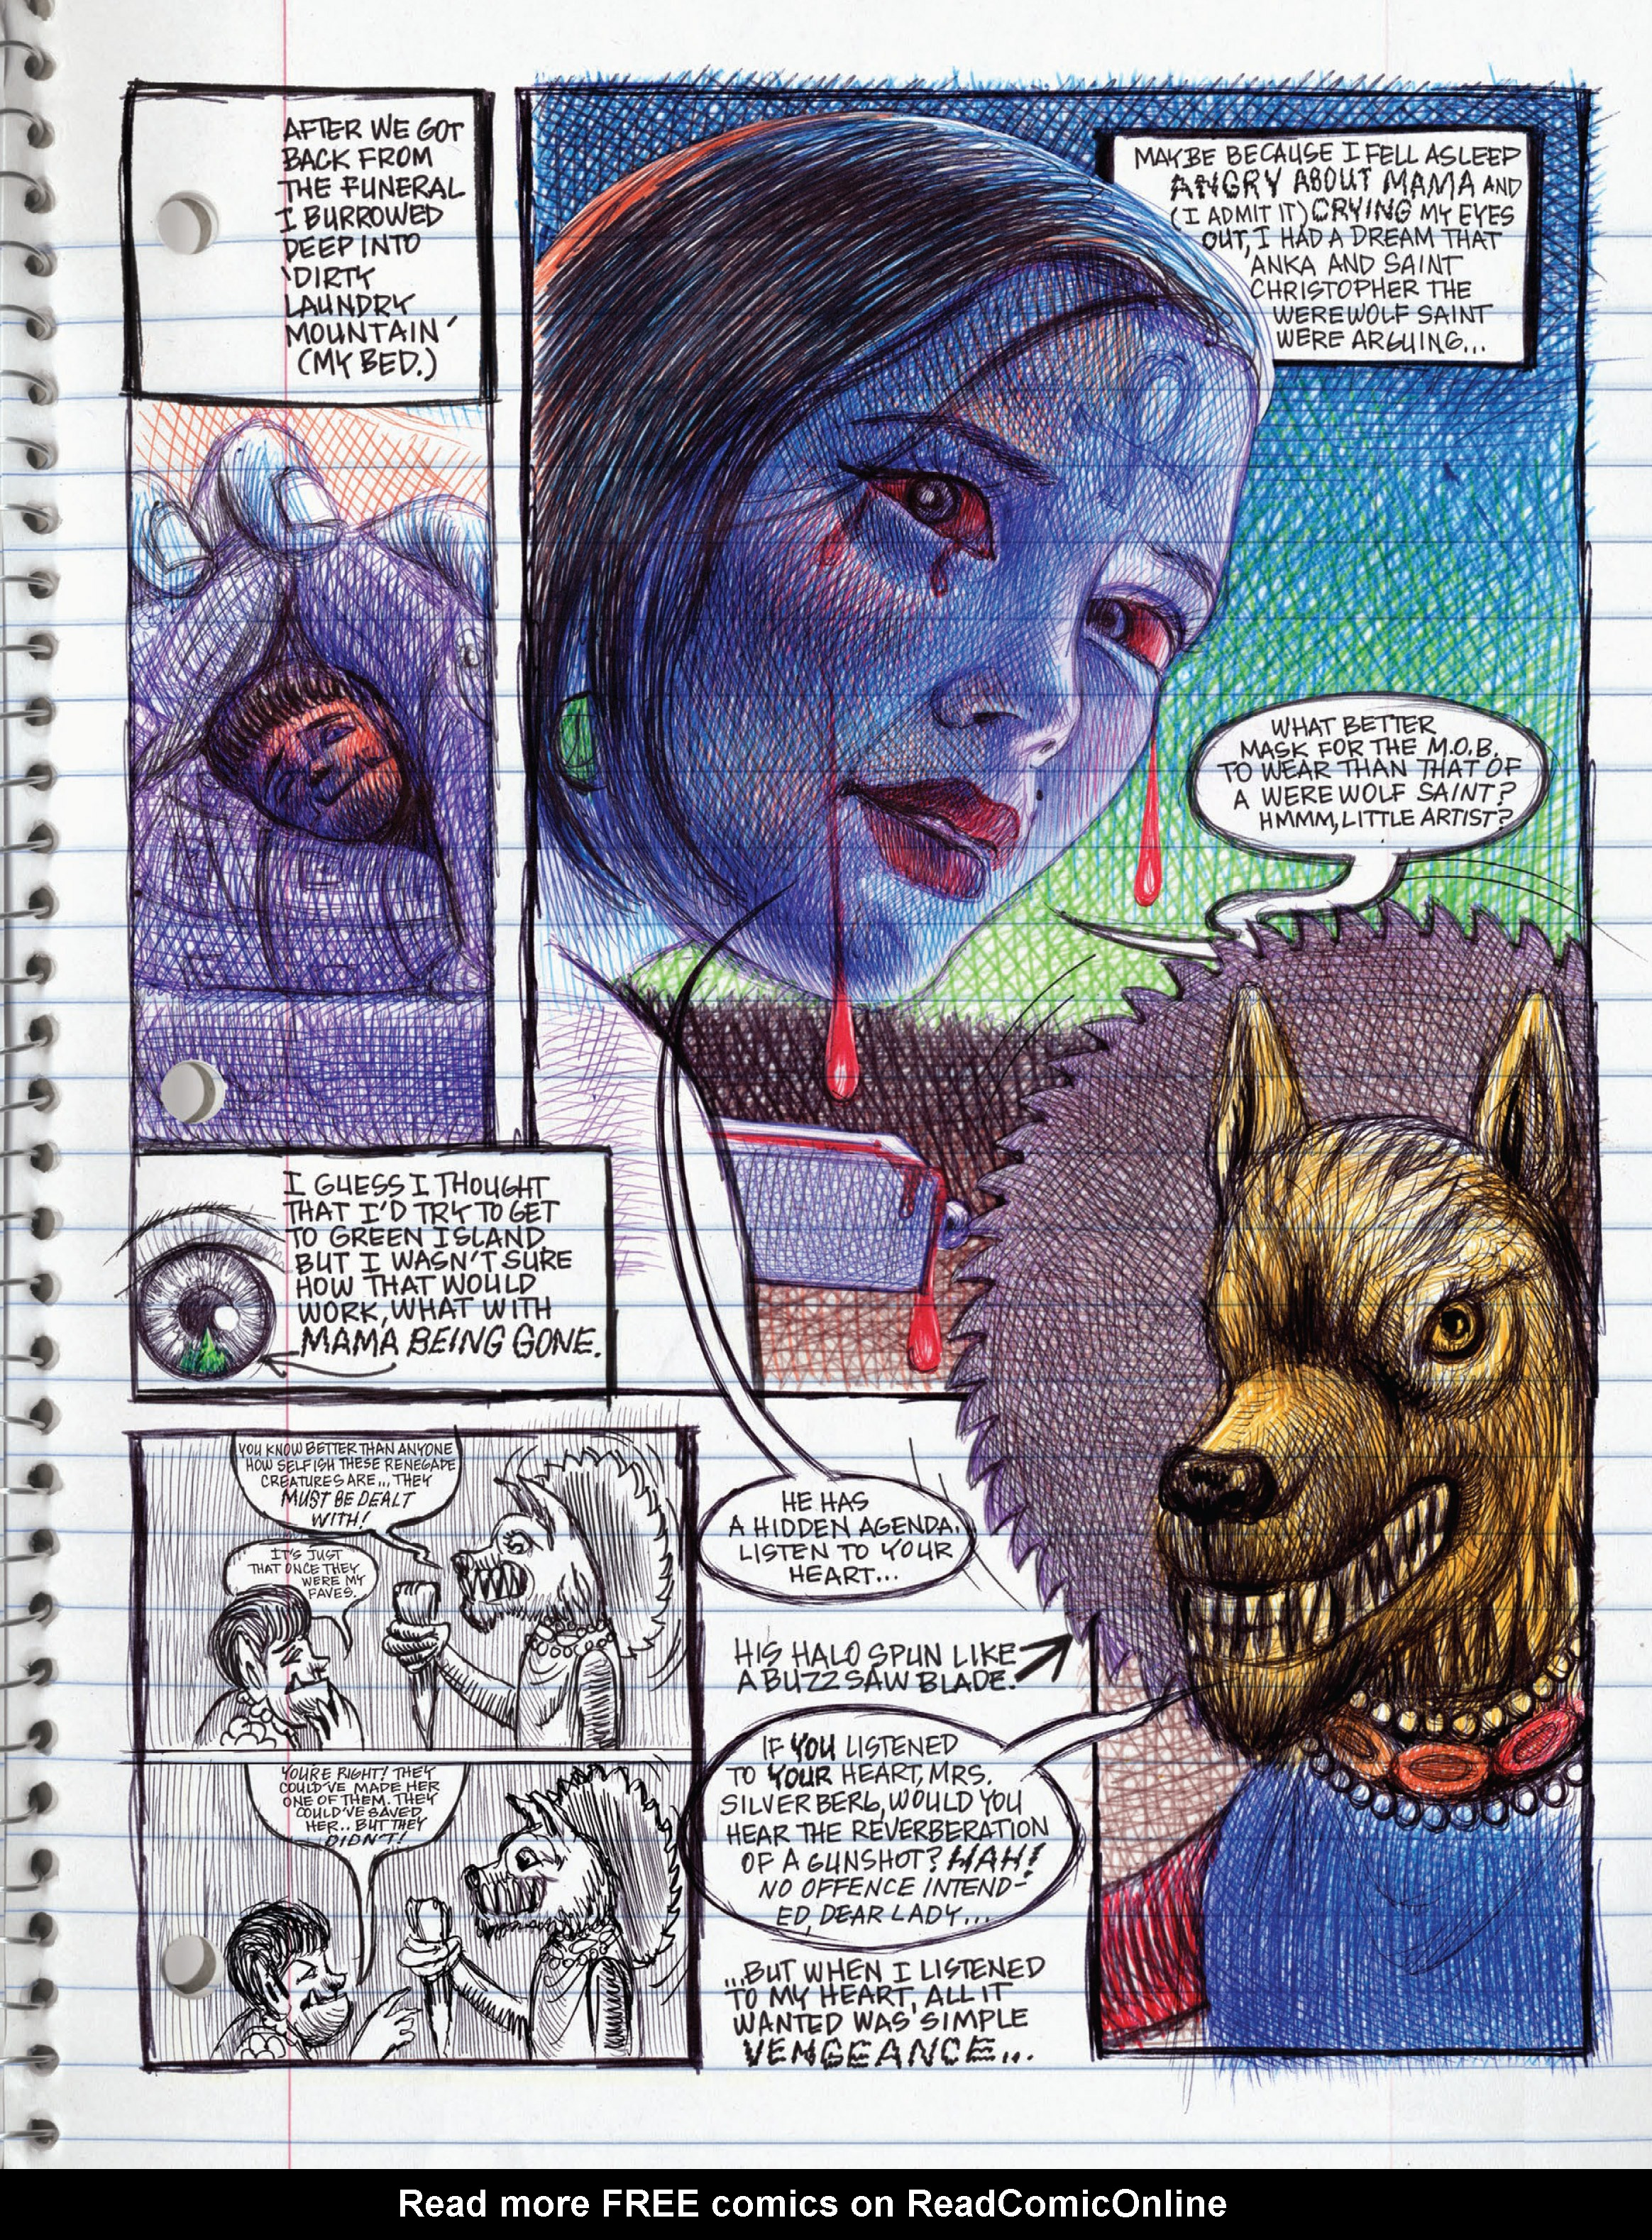 Read online My Favorite Thing is Monsters comic -  Issue #1.5 - 187